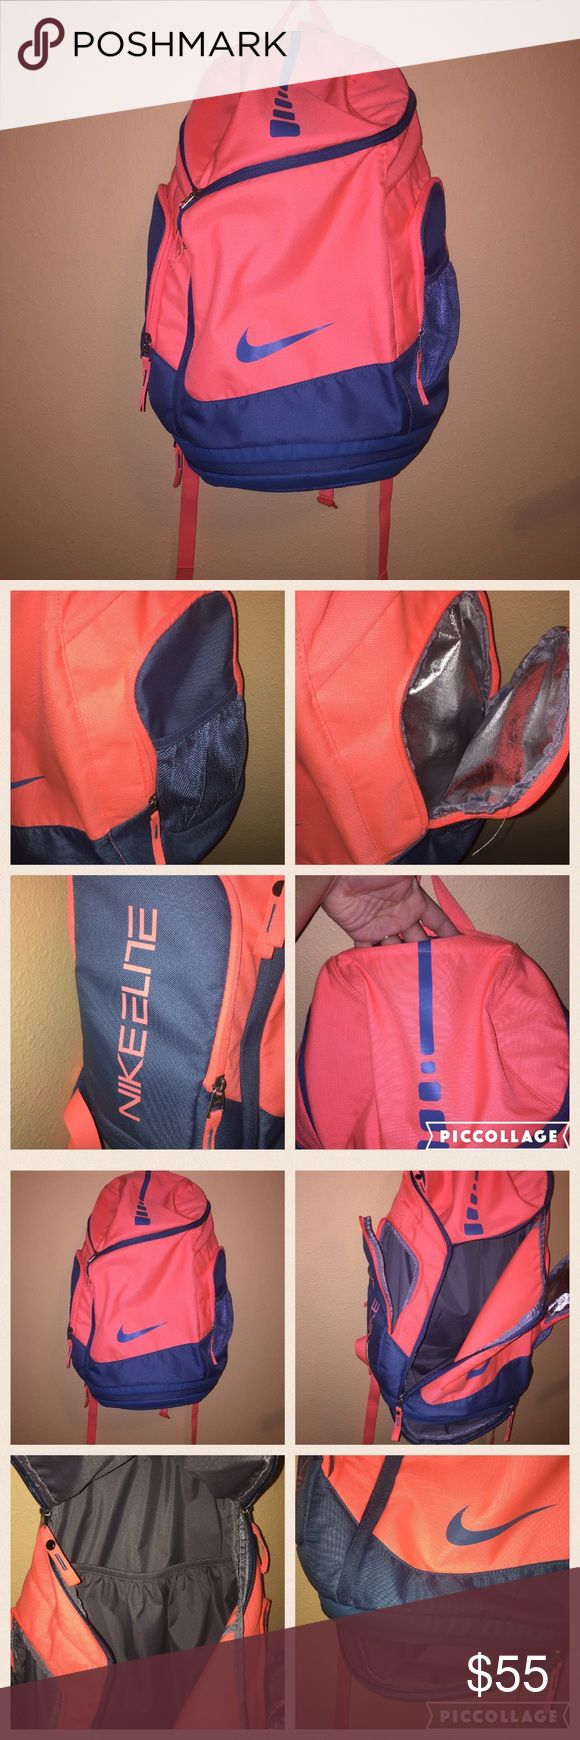 Nike Air Max elite backpack Very Gently used. The colors just pop out at you! Has two pockets on the side, one is insulated. The other has a mesh pocket on the outside. Has a bottom zipper compartment for shoes. Has a pocket on the very top. Padded straps with a strap for across the chest. Straps have VERY light discoloration from wear. I wish i used it more. Its about 24inches wide and 15inches long. No trades please. If you'd like to make an offer, please submit it. Any questions? Just ask…